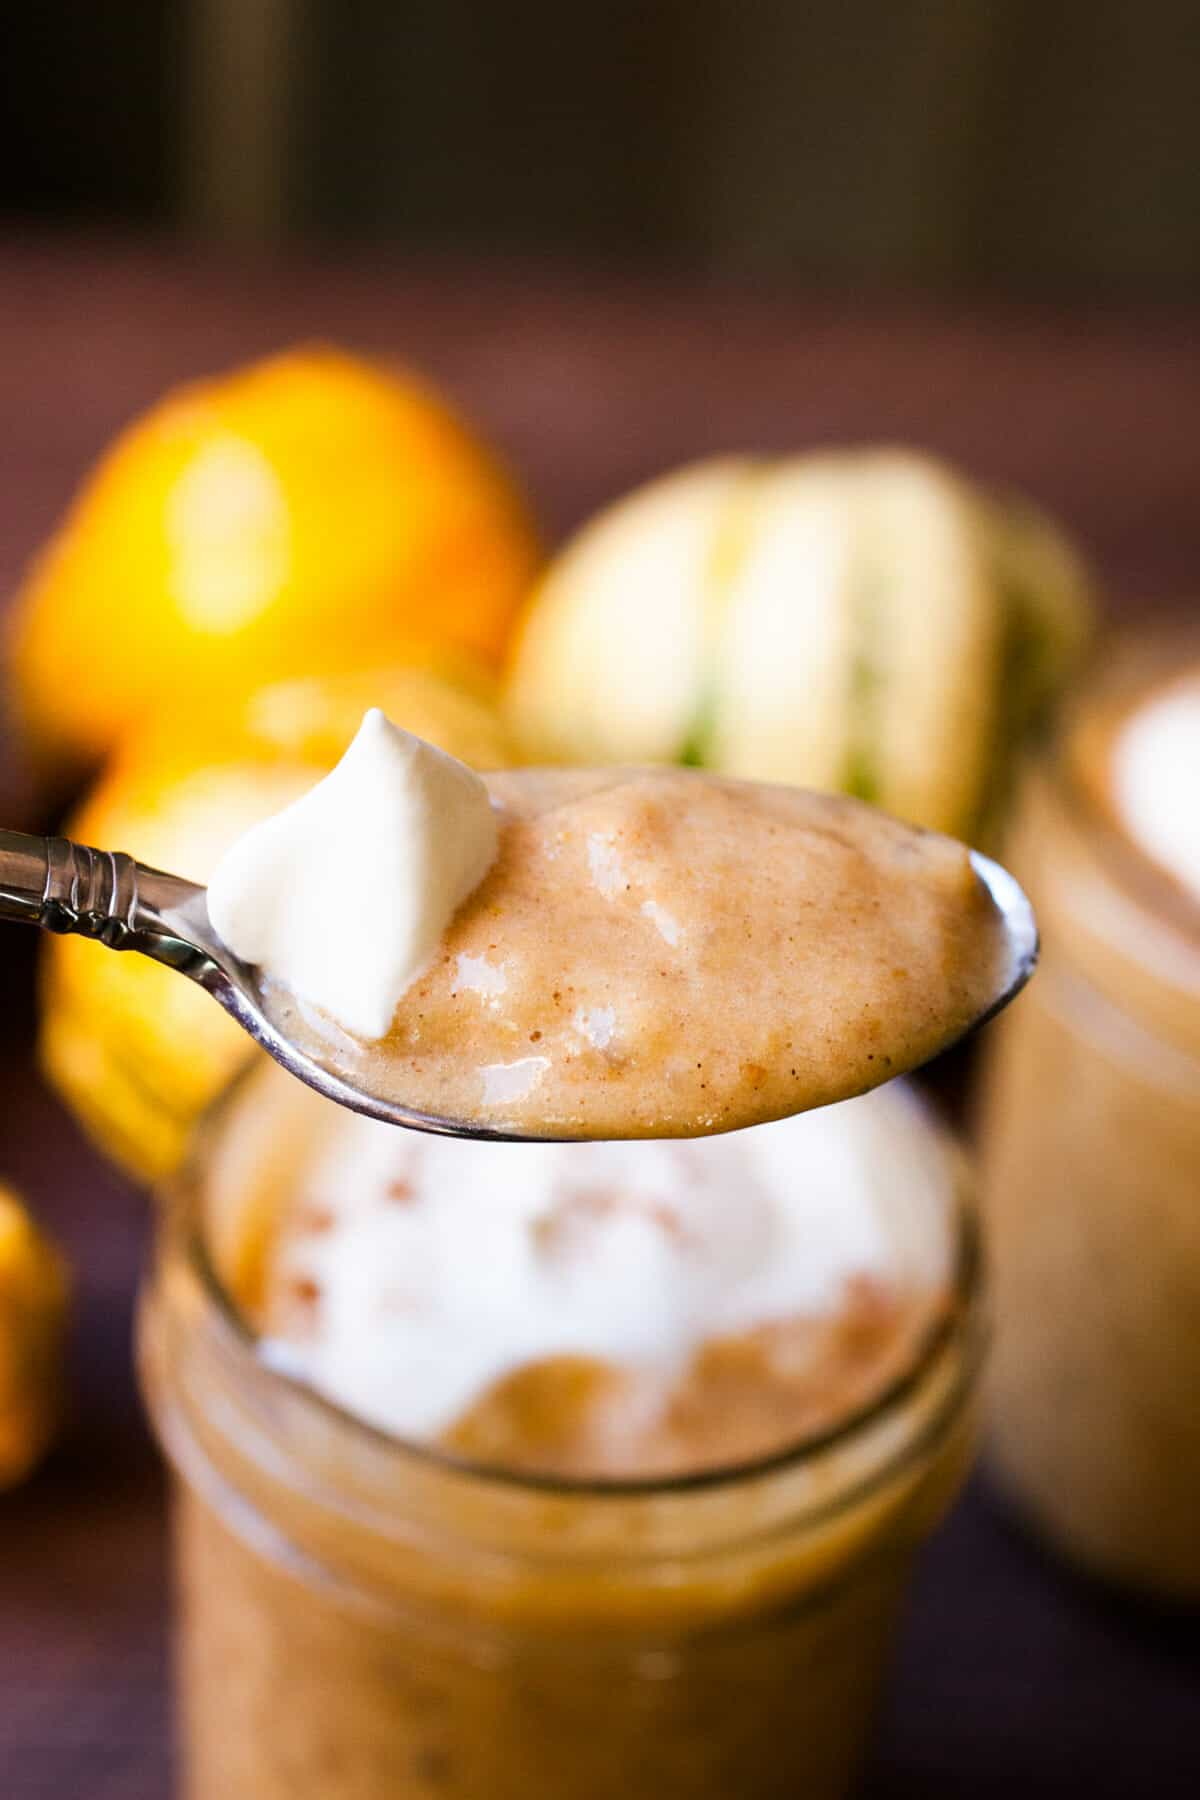 Pumpkin Tapioca Pudding: This creamy homemade tapioca is almost like pumpkin pie in a jar! It's so creamy and delicious and has just enough spice and sweetness. You'll love it. | macheesmo.com